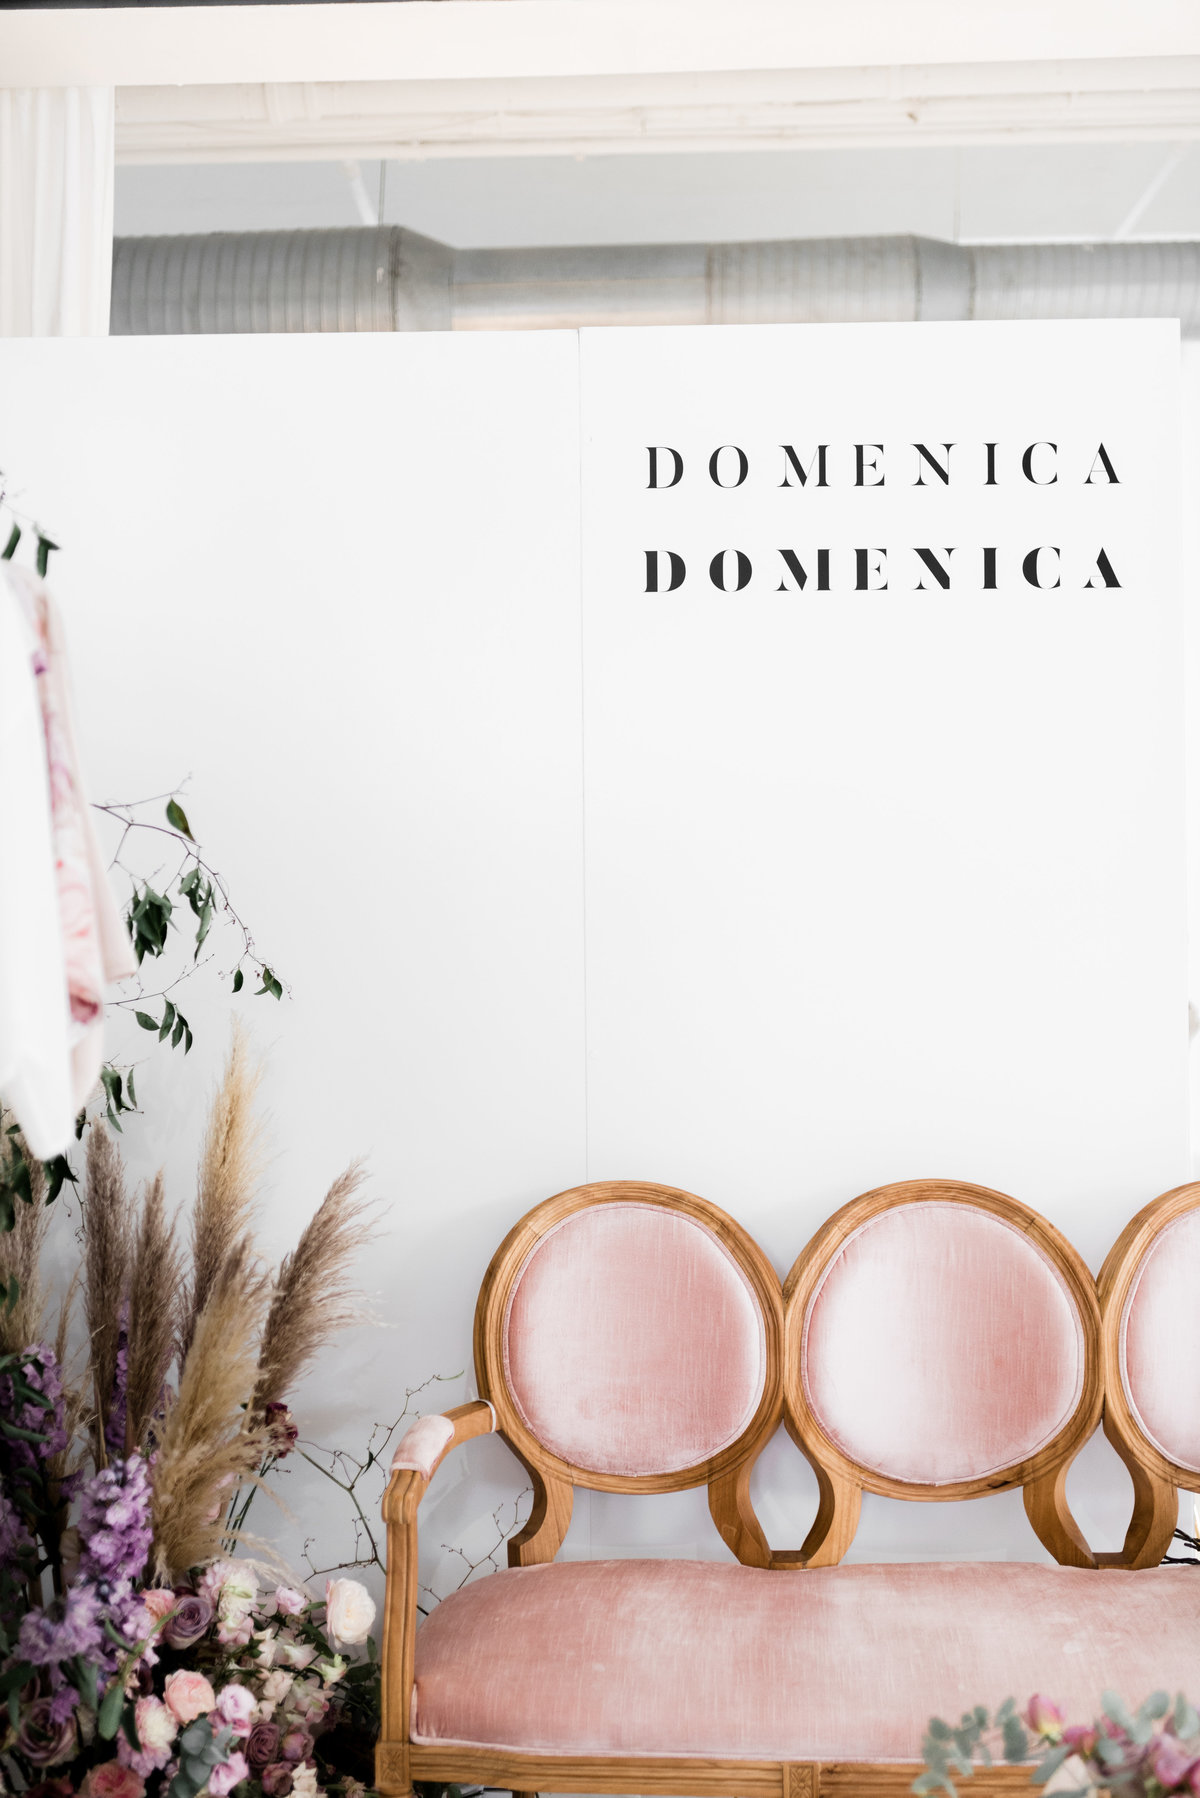 DOMENICADOMENICA-ONEFINEDAY2018-24